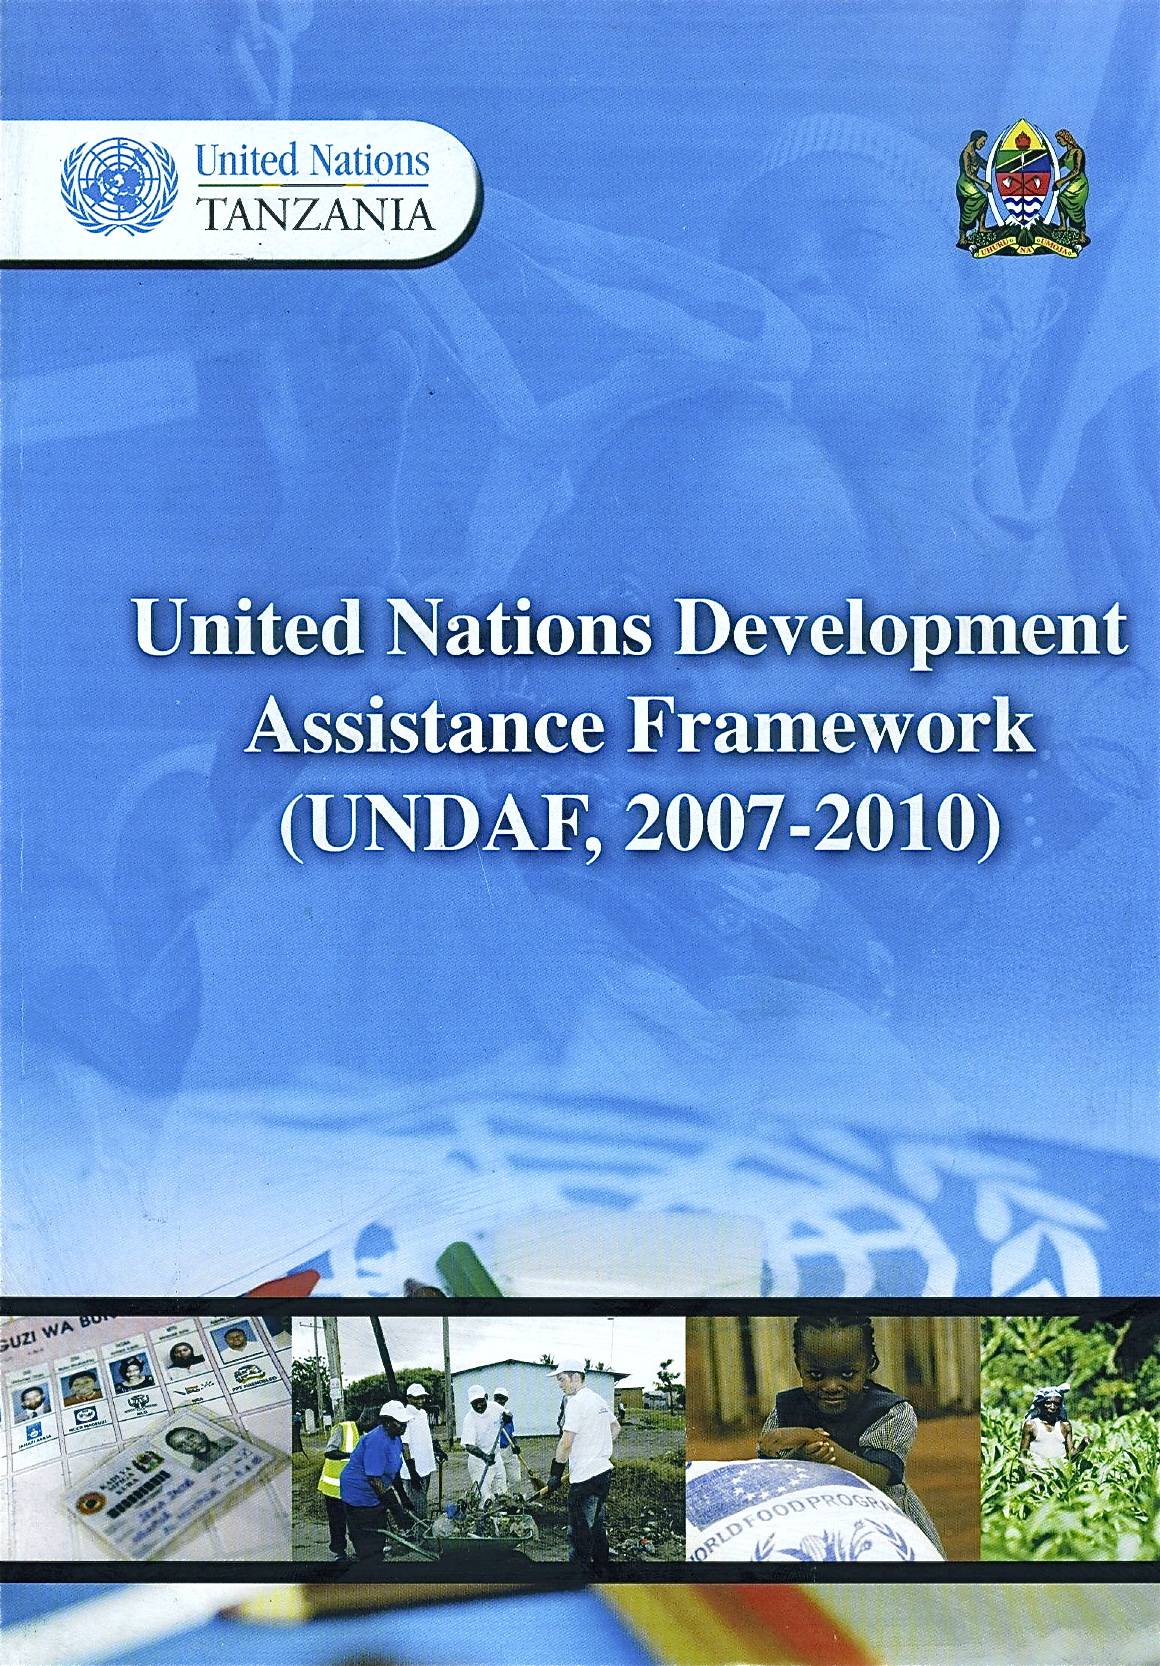 United Nations Development Assistance Framework, 2007-10.  Editor. (One UN, 2007)